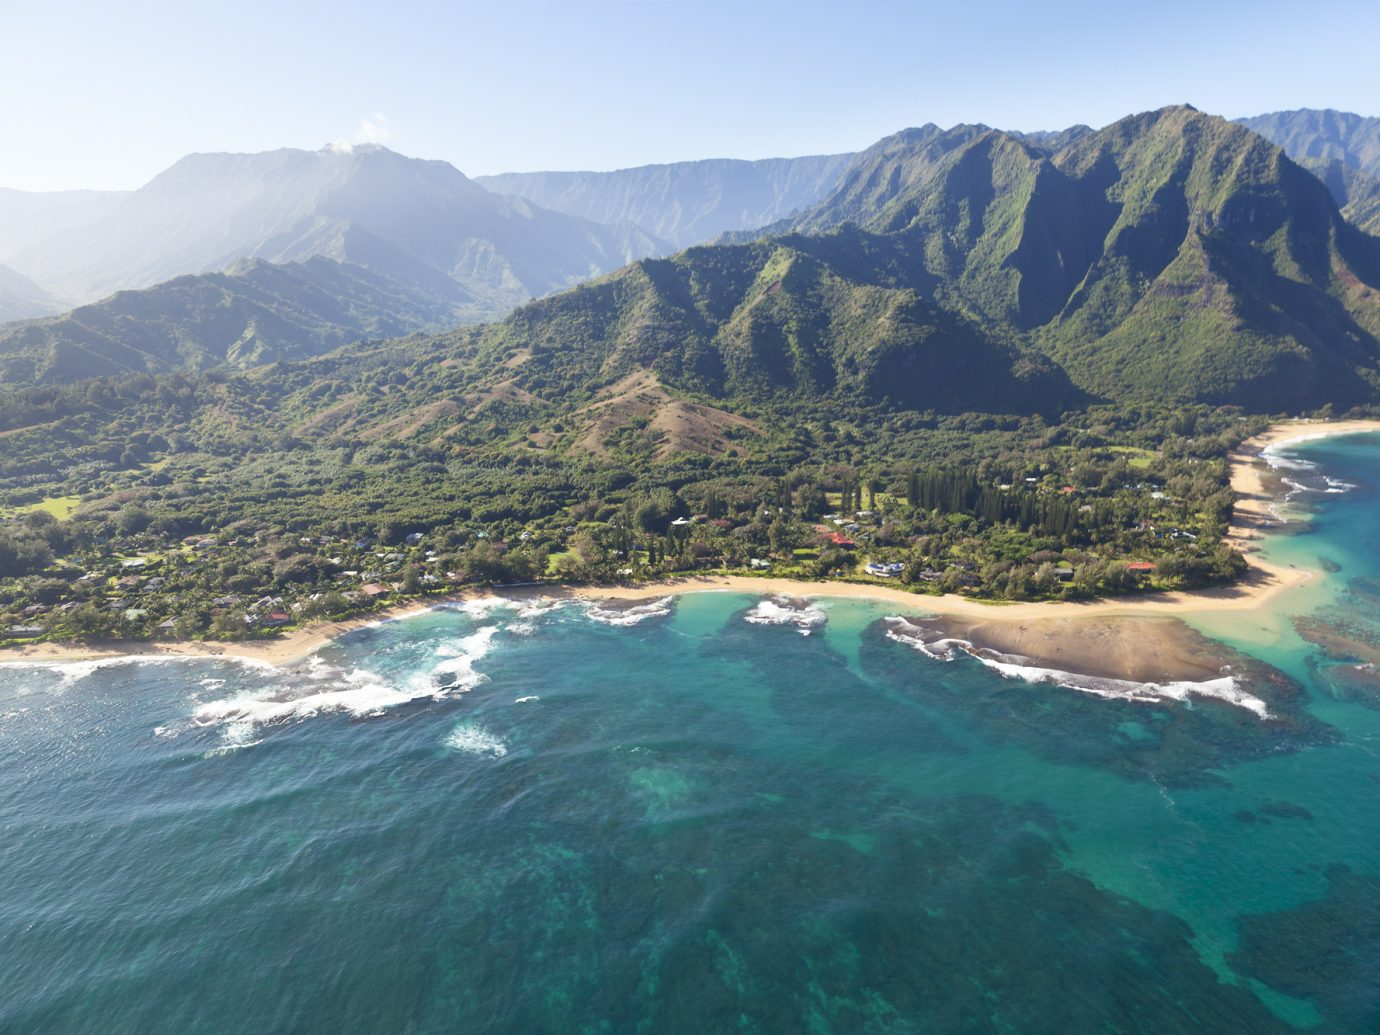 View of Tunnels Beach and Haena Beach in Kauai, Hawaii